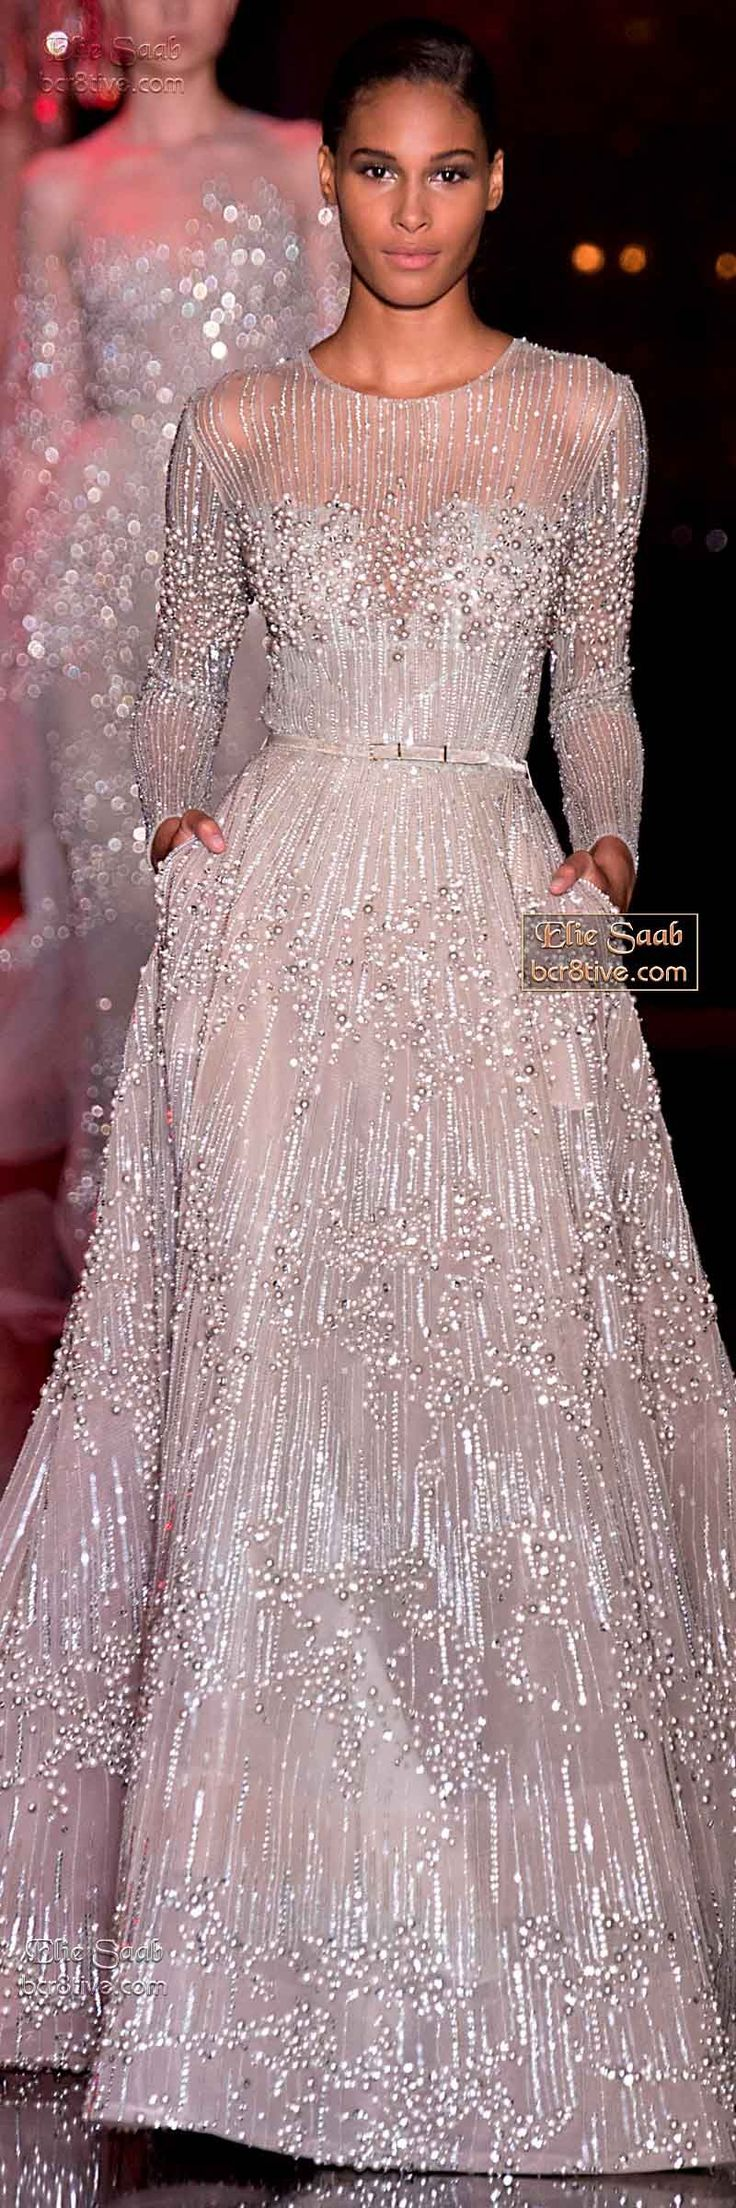 Elie Saab Fall Winter 2014-15 Couture - Page 6 of 8